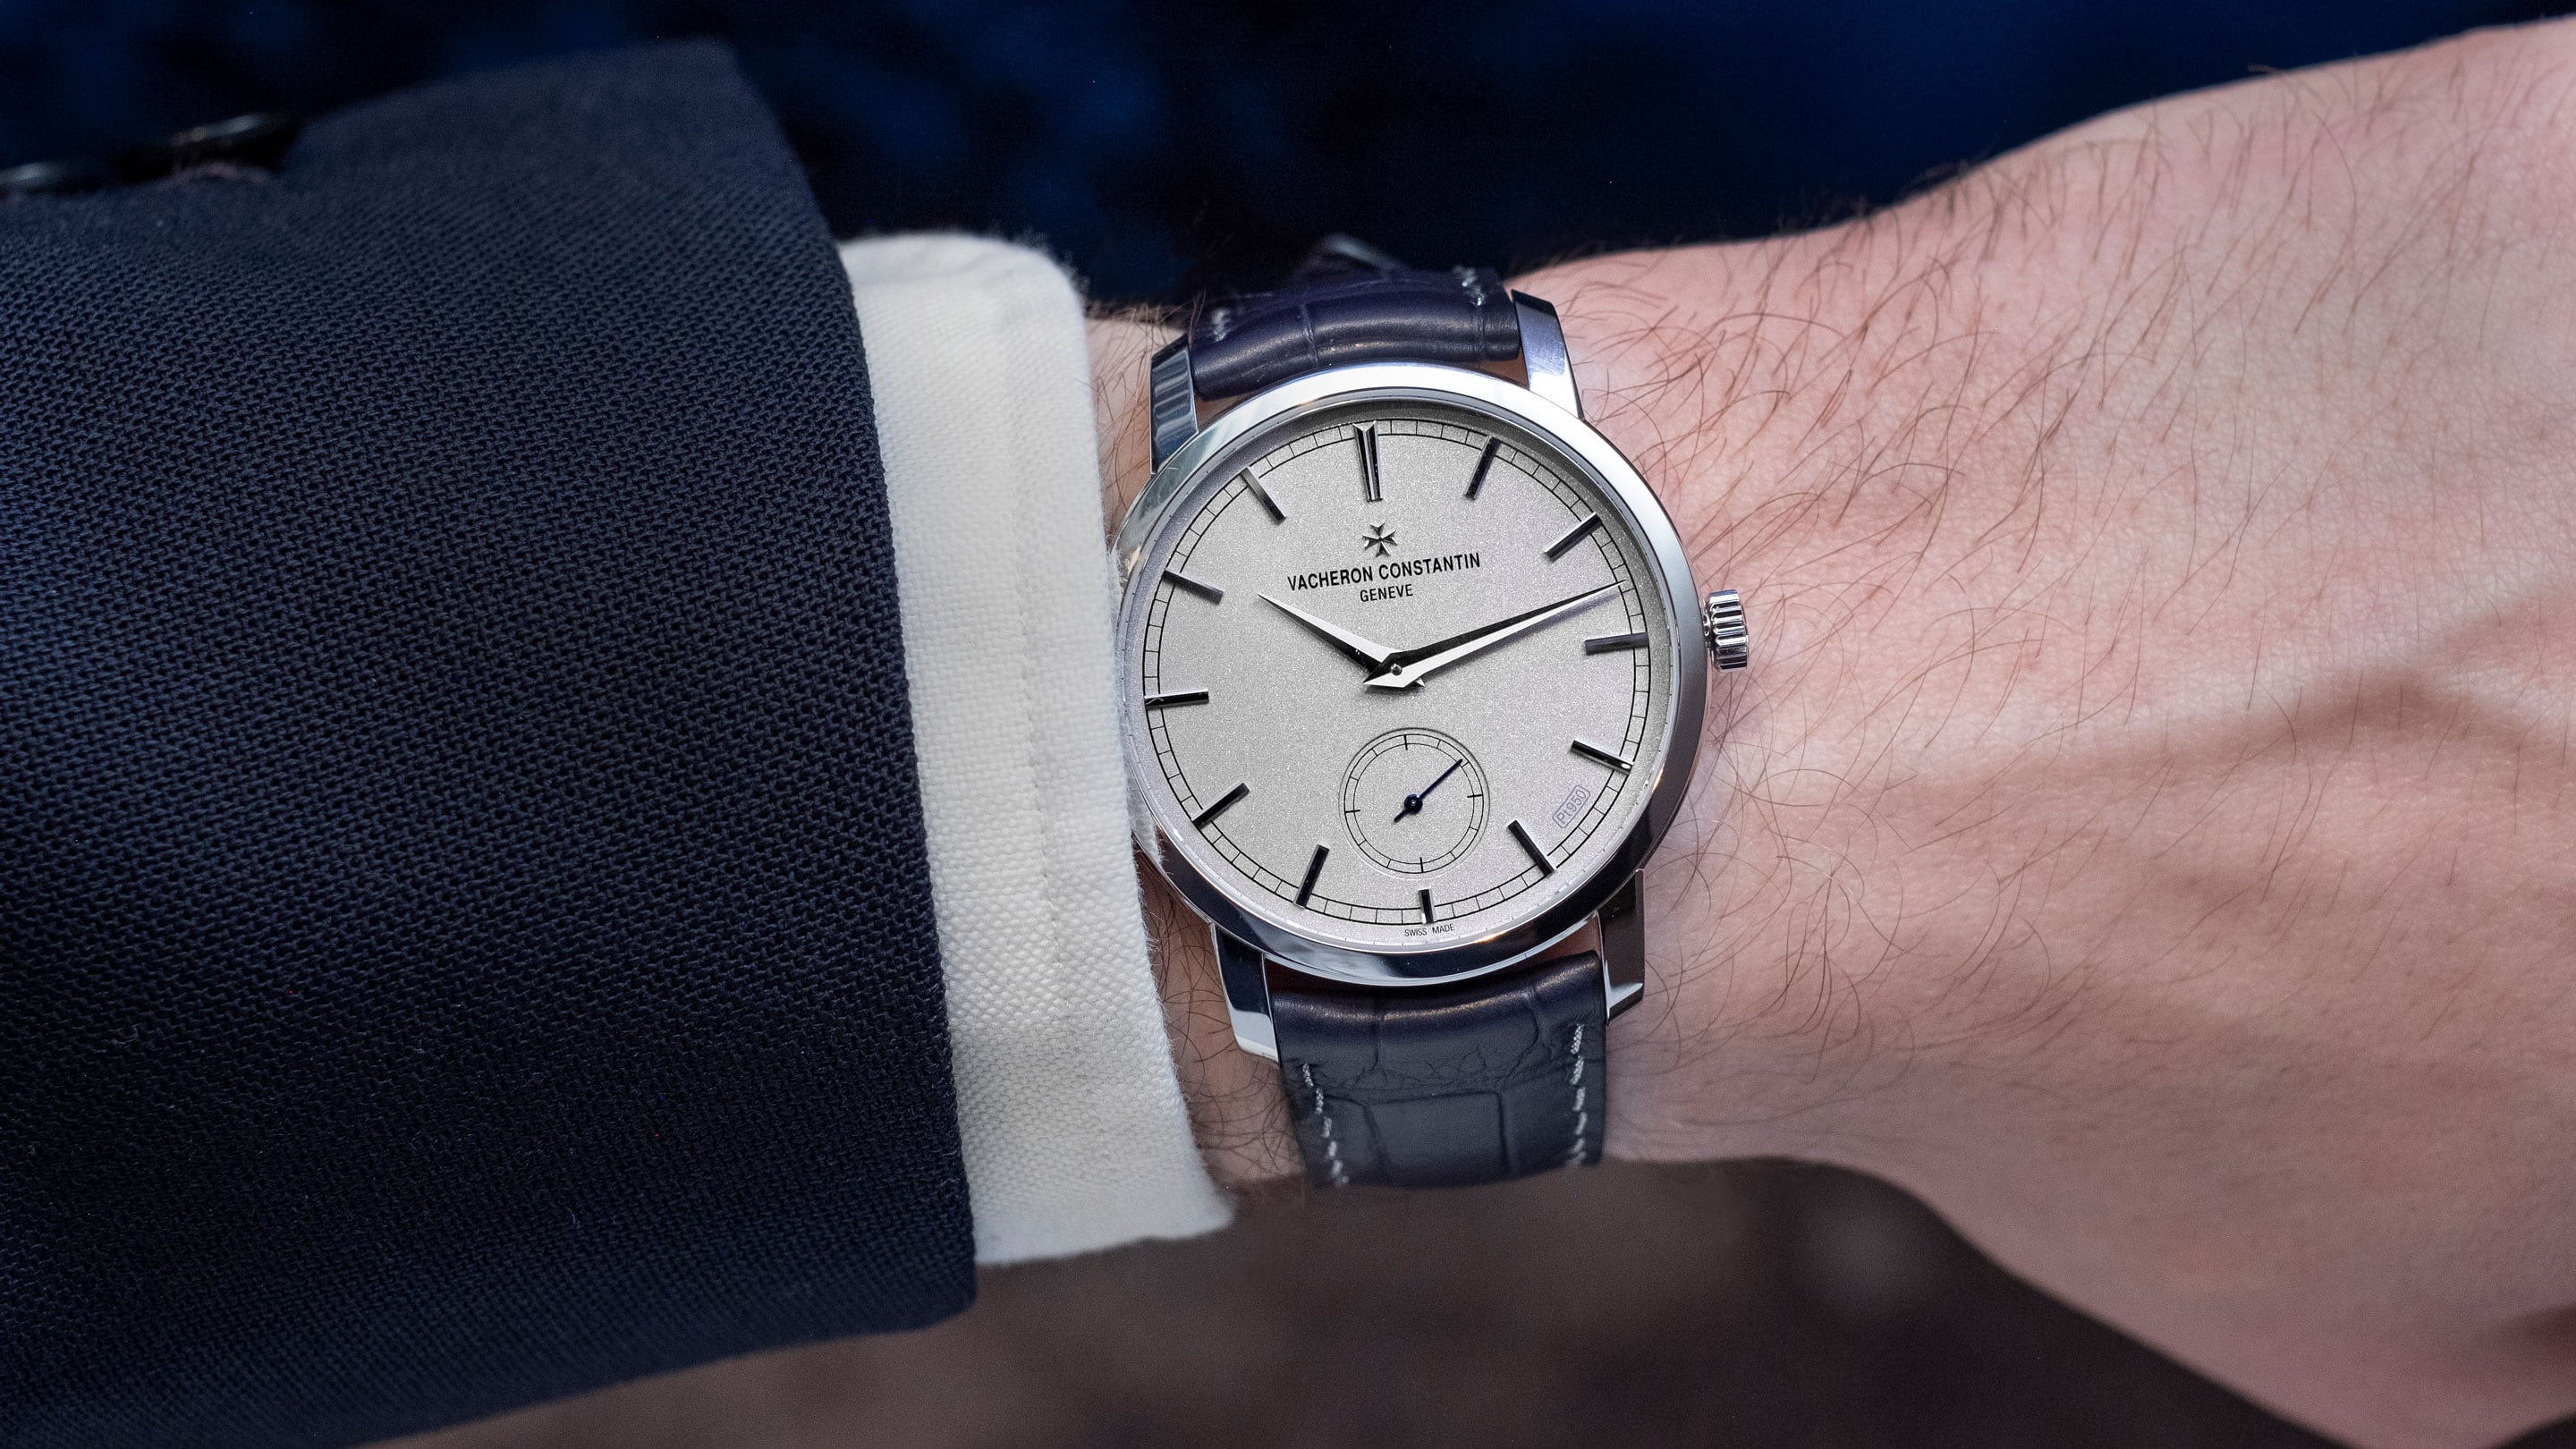 Hands-On: The Vacheron Constantin Traditionnelle Manual